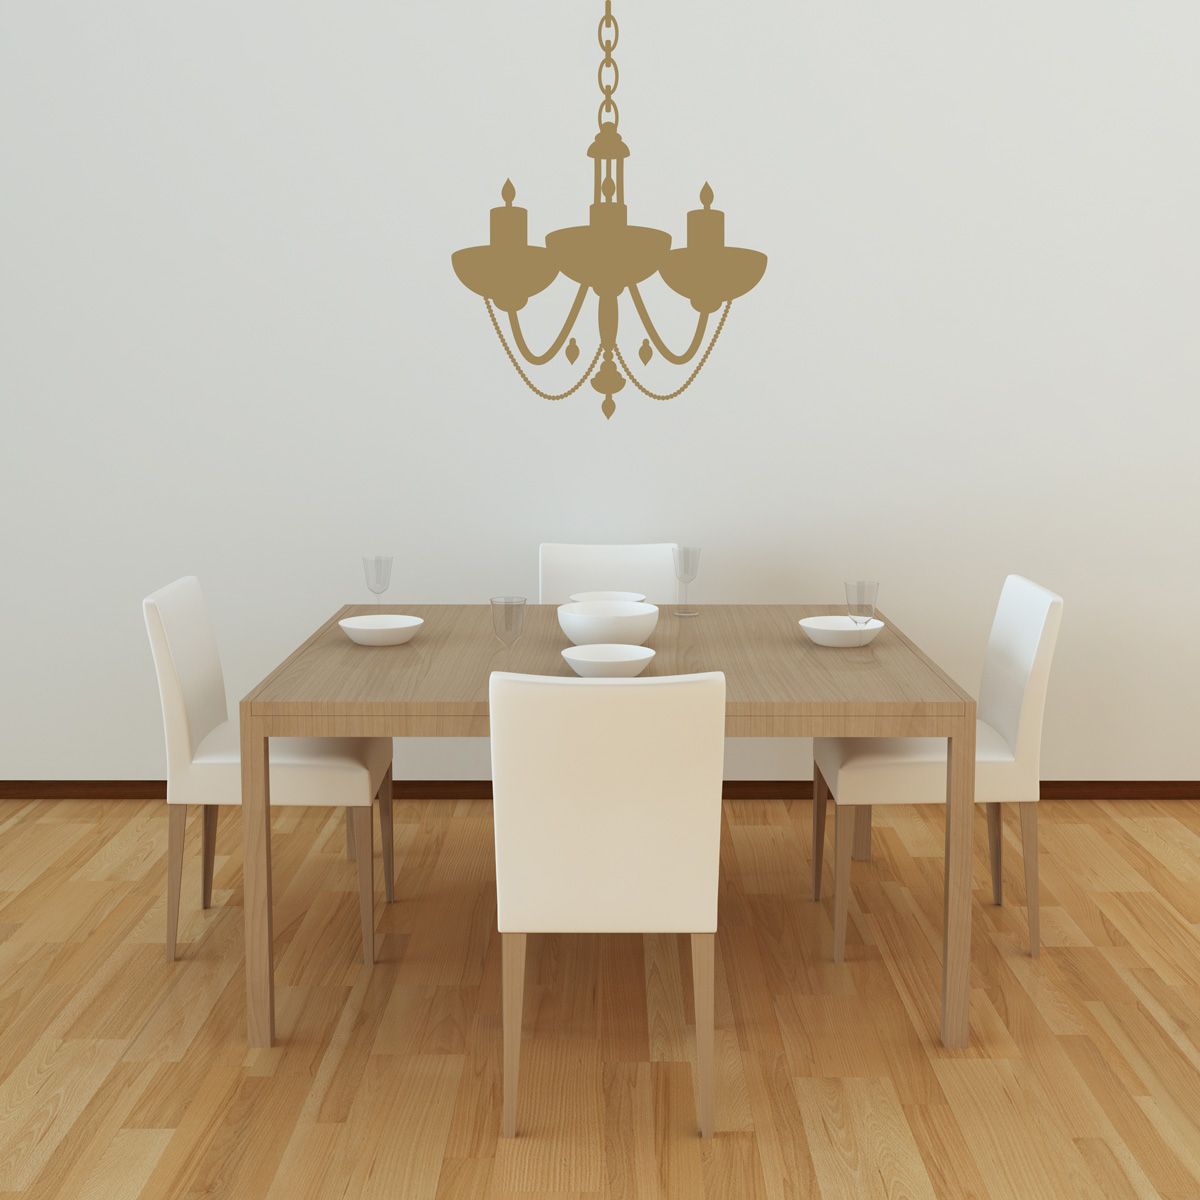 Chandelier wall decal style 6 for Dining room wall decals